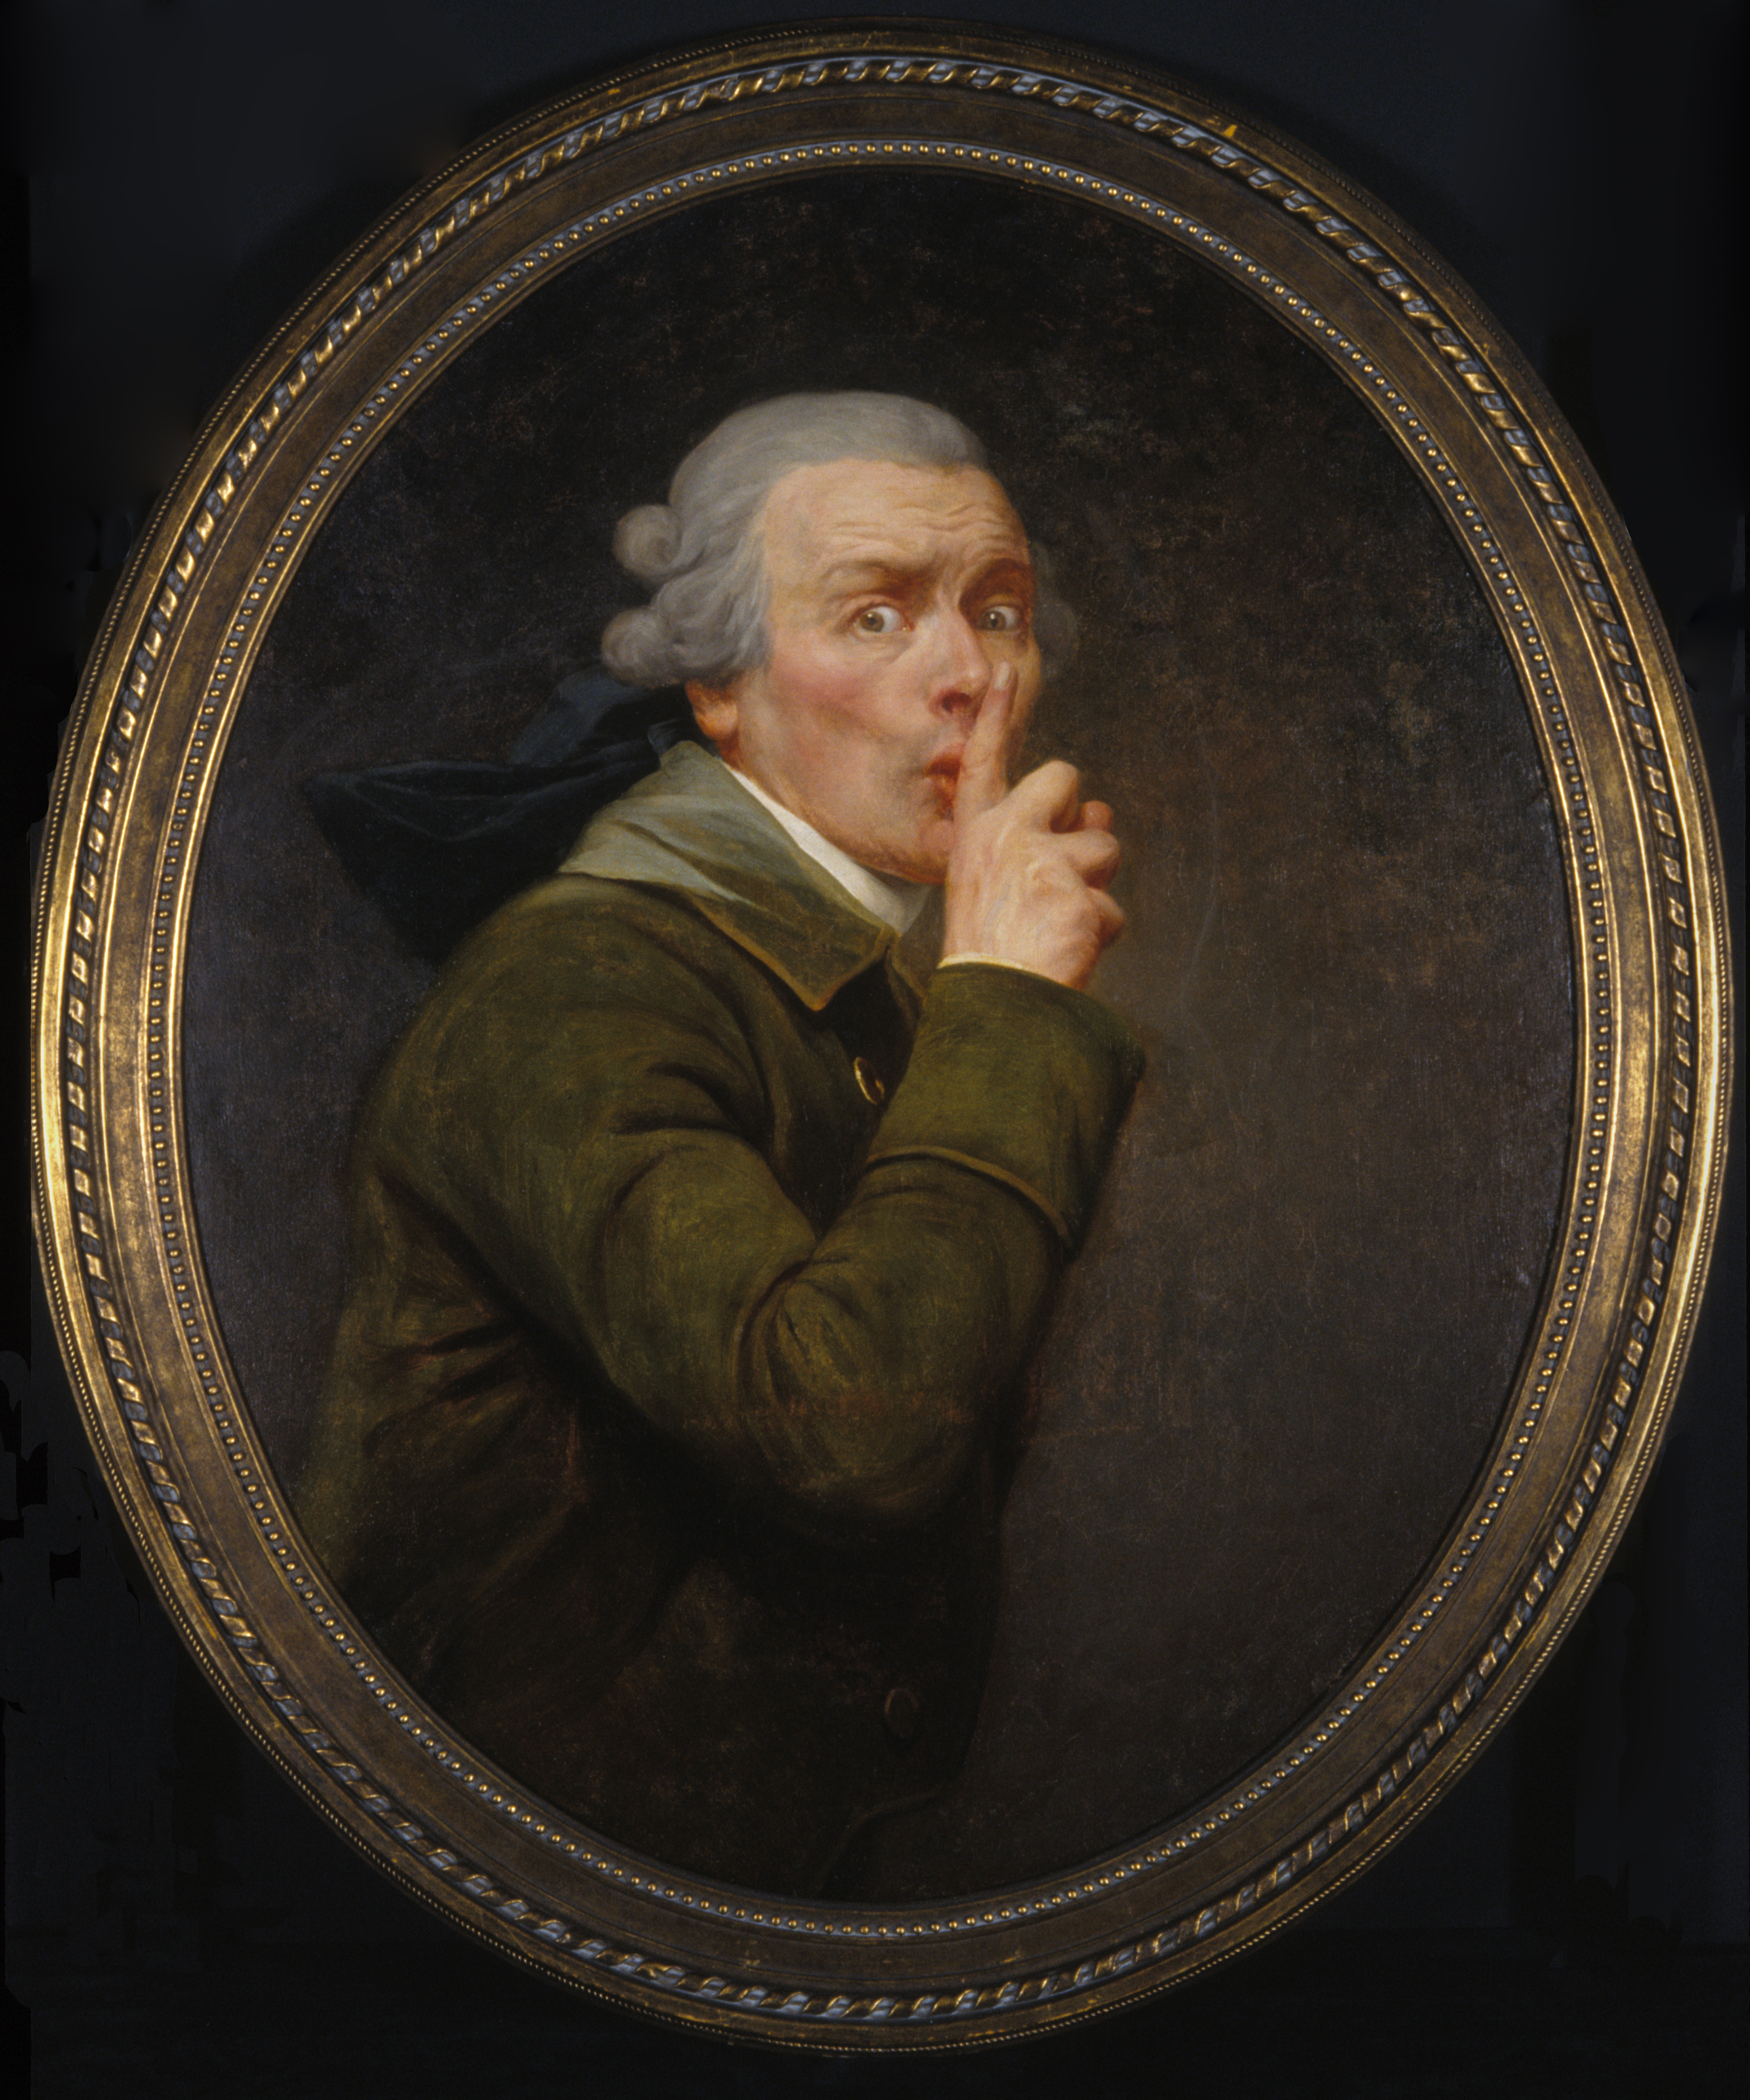 ducreux 1791 Le-discret Spencer Museum of Art, University of Kansas, Lawrence, Kansas